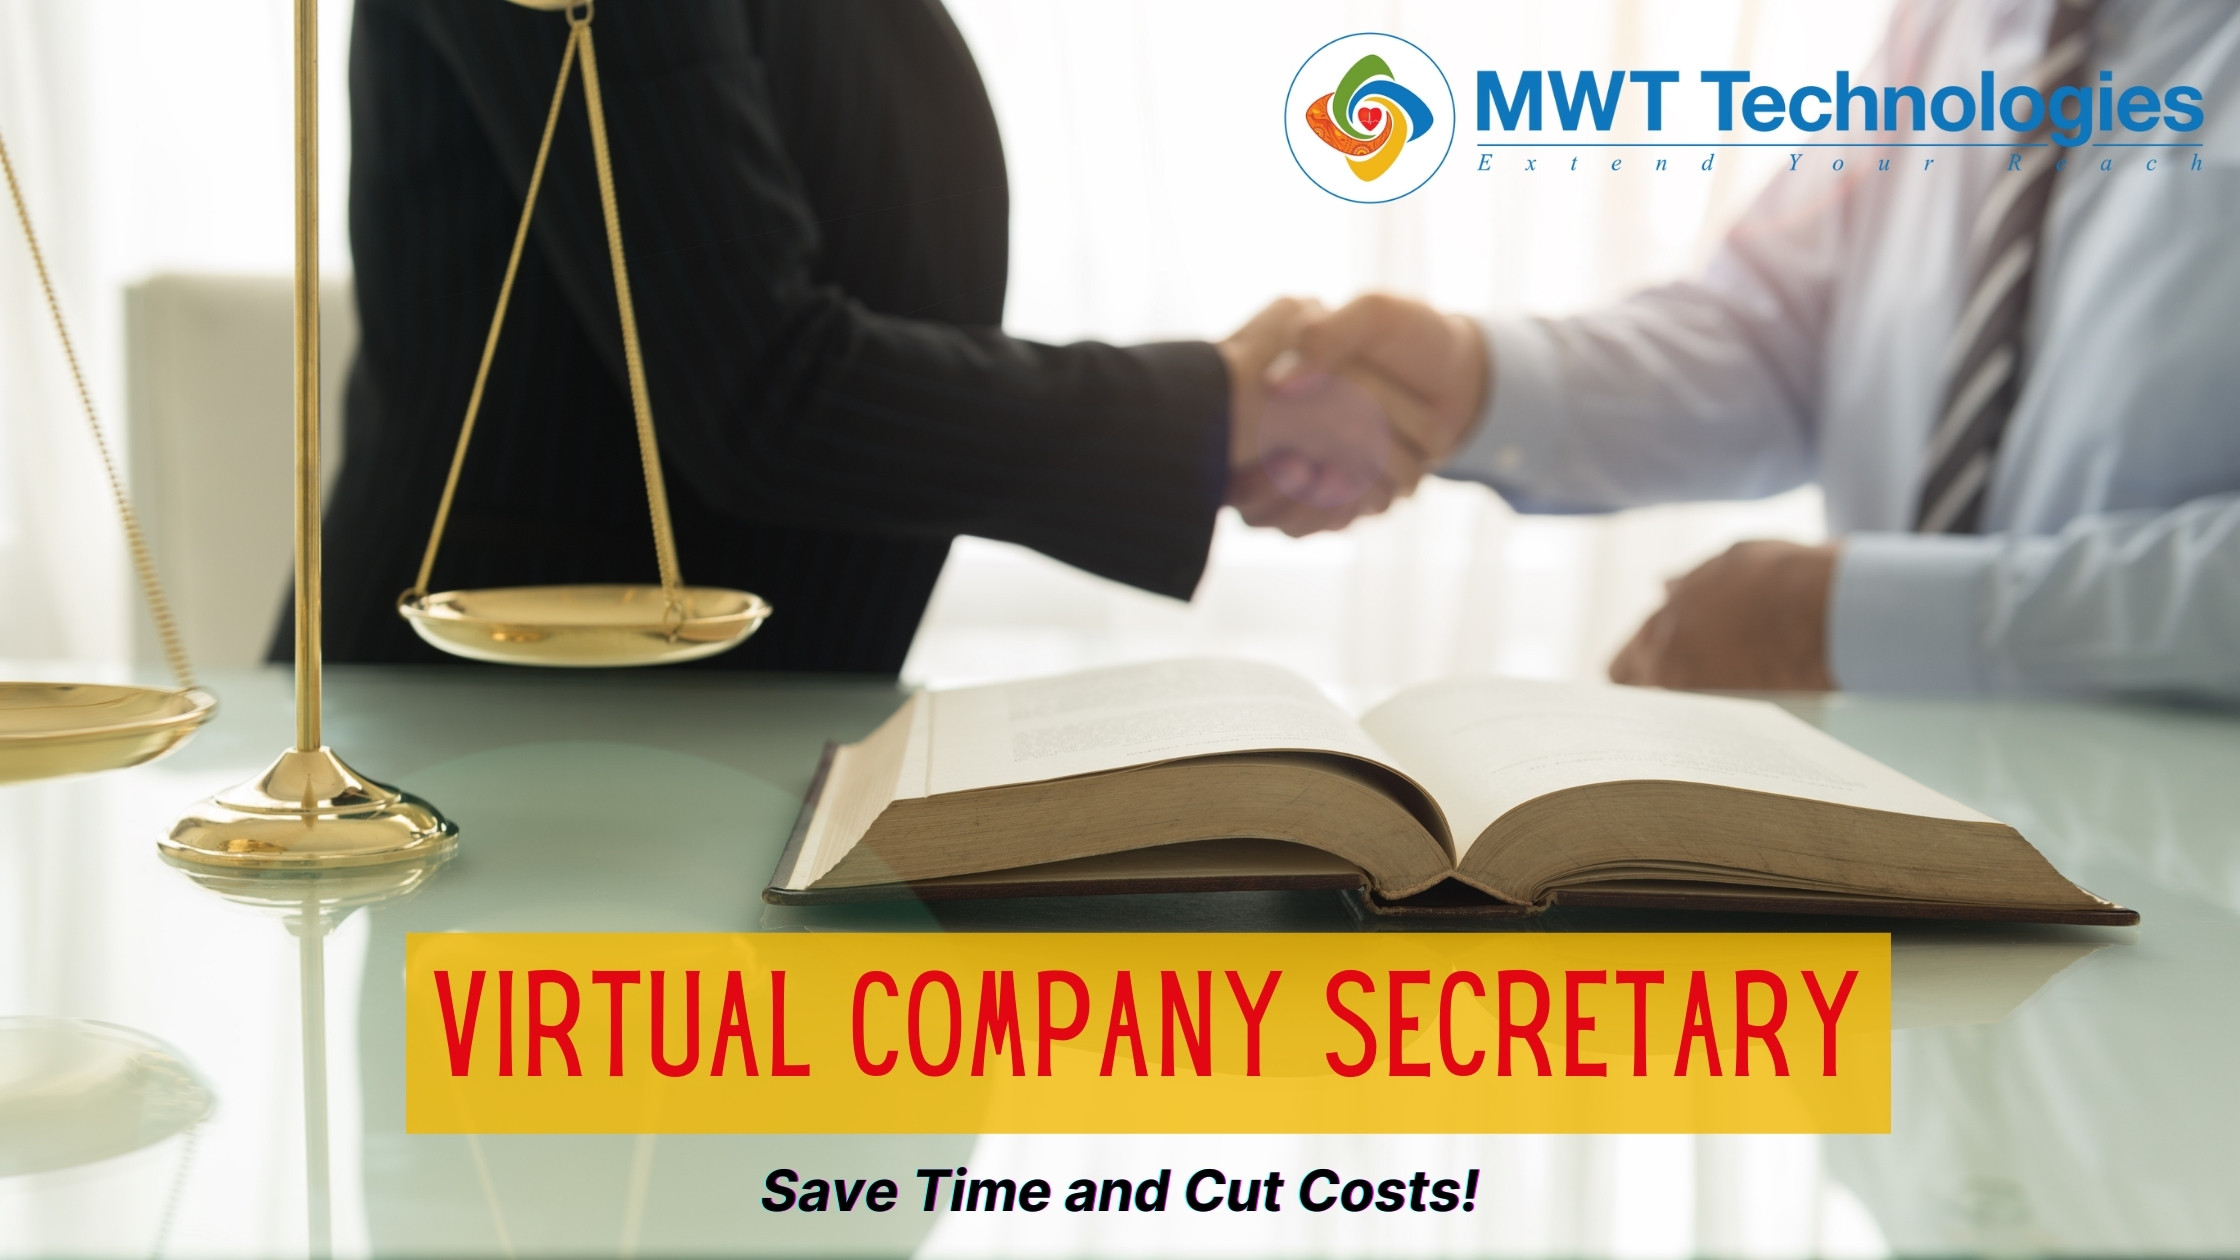 Virtual Company Secretary: Save Time and Cut Costs!